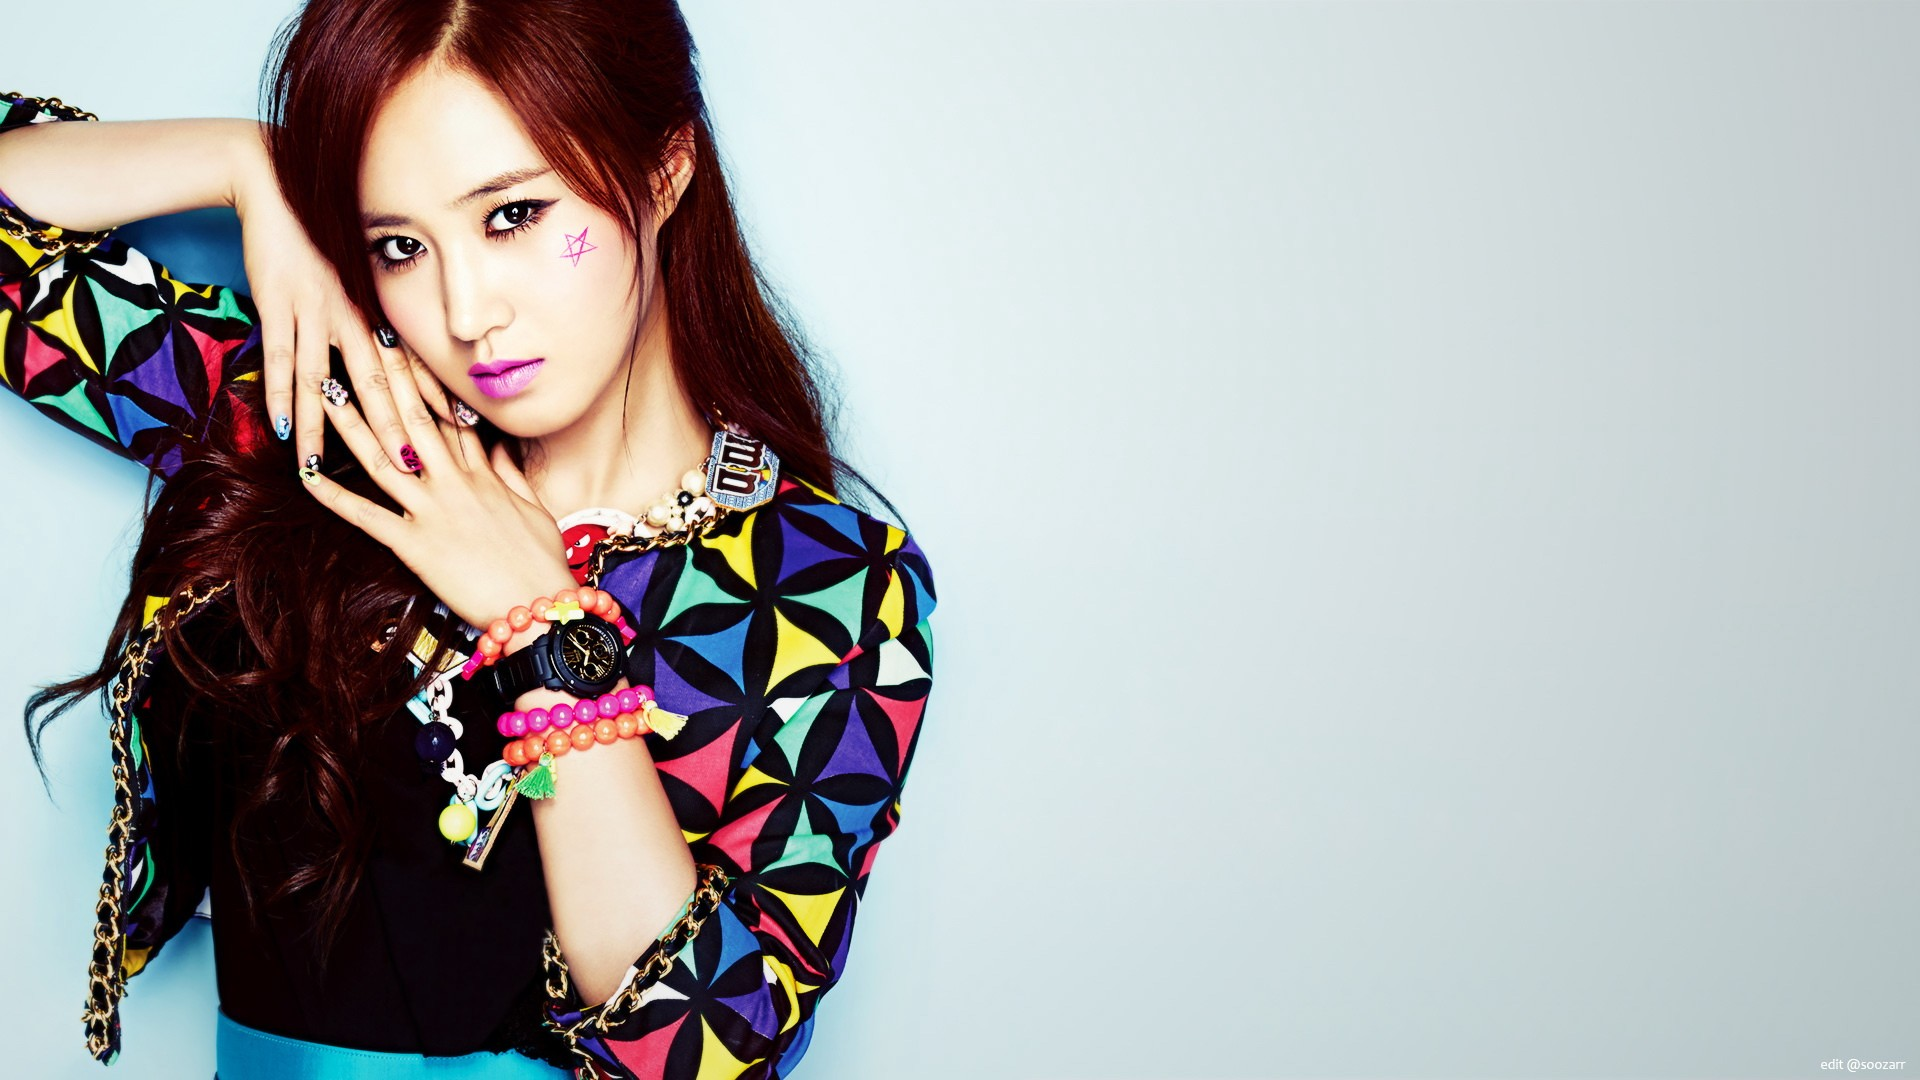 yuri snsd wallpaper 2013 - photo #1